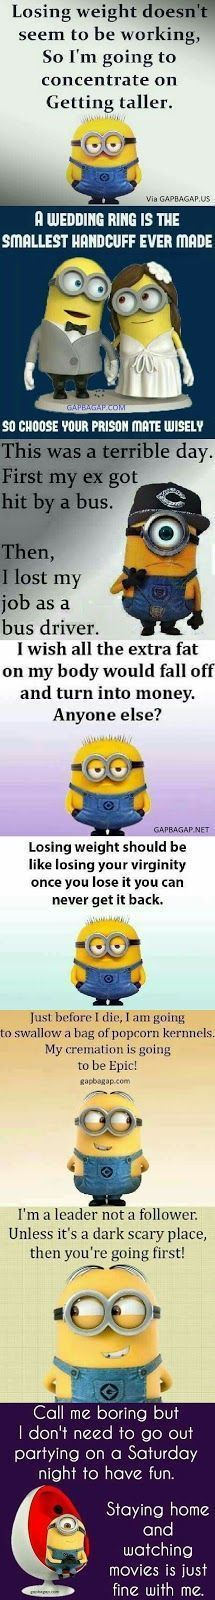 Funny Minion Jokes Collection From Around The World - Collection, Funny, funny minion memes, funny minion quotes, Funny Quote, Jokes, Minion, world - Minion-Quotes.com